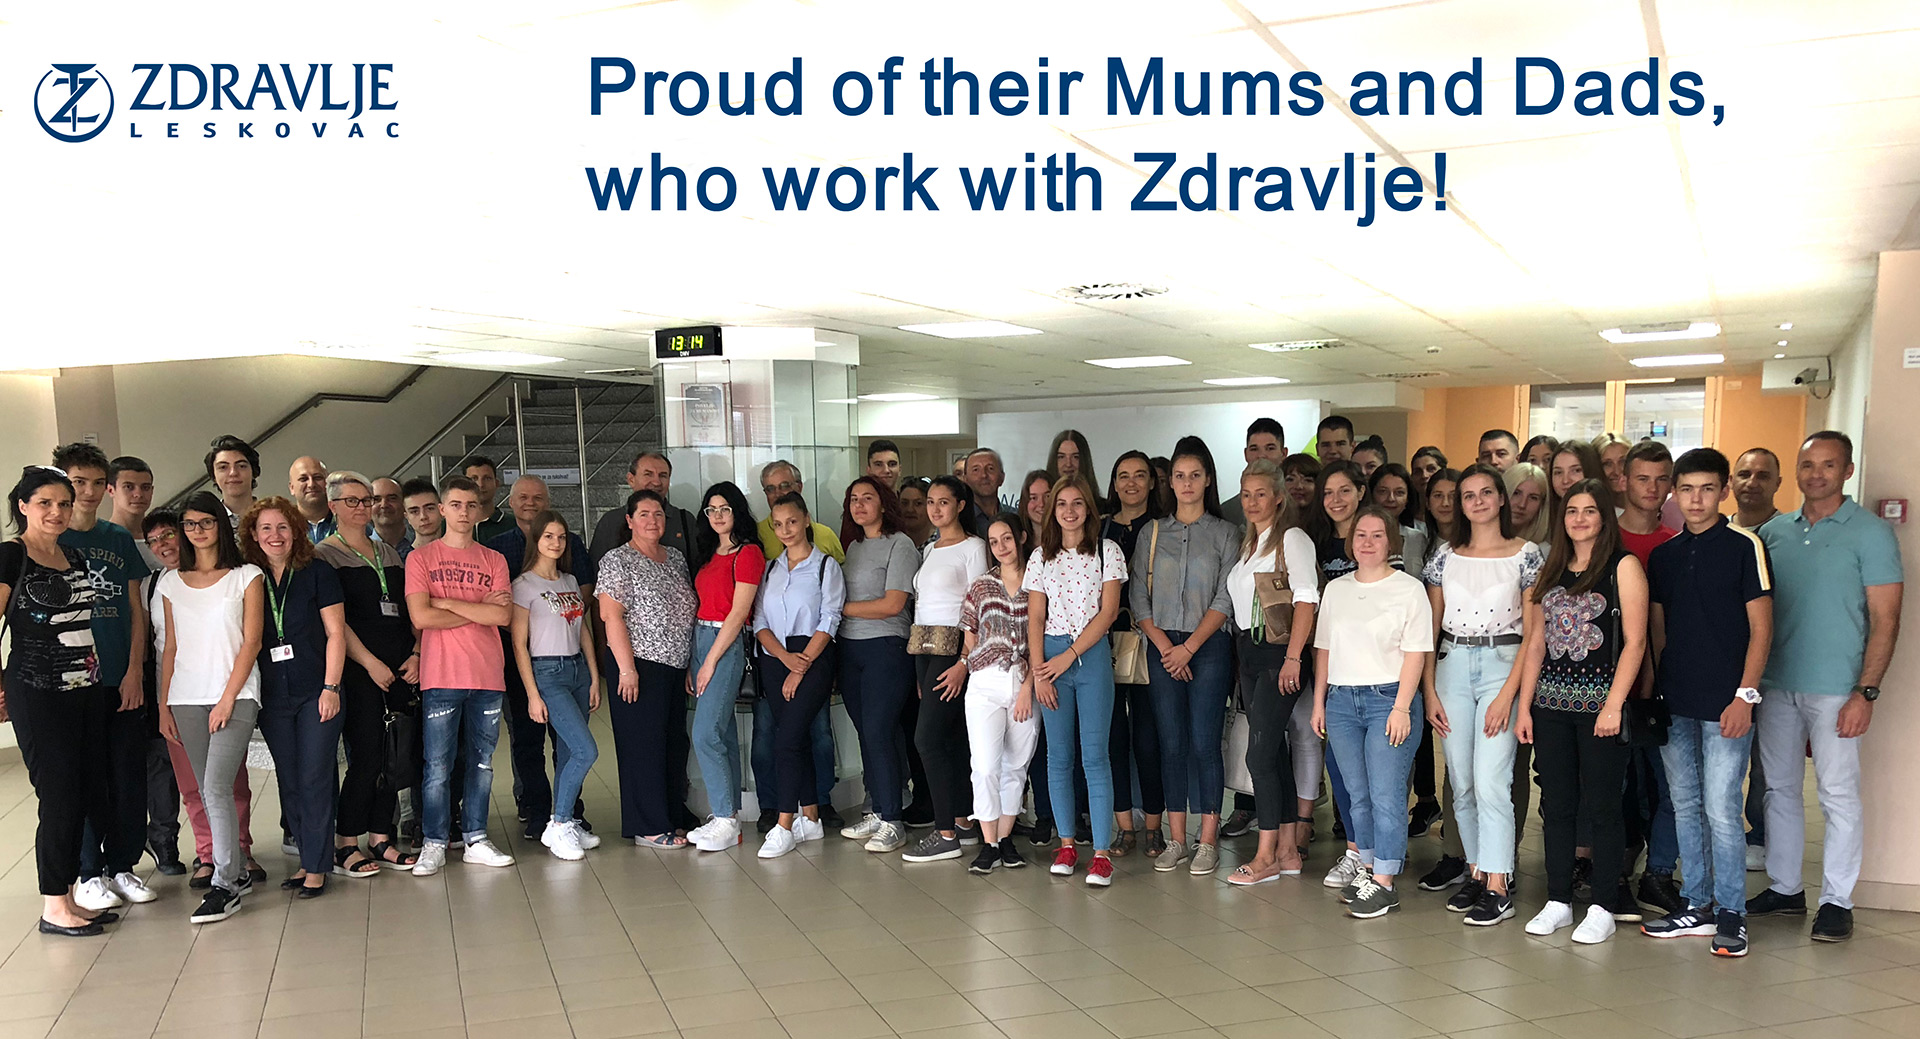 Proud-of-their-Mums-and-Dads-in-Zdravlje